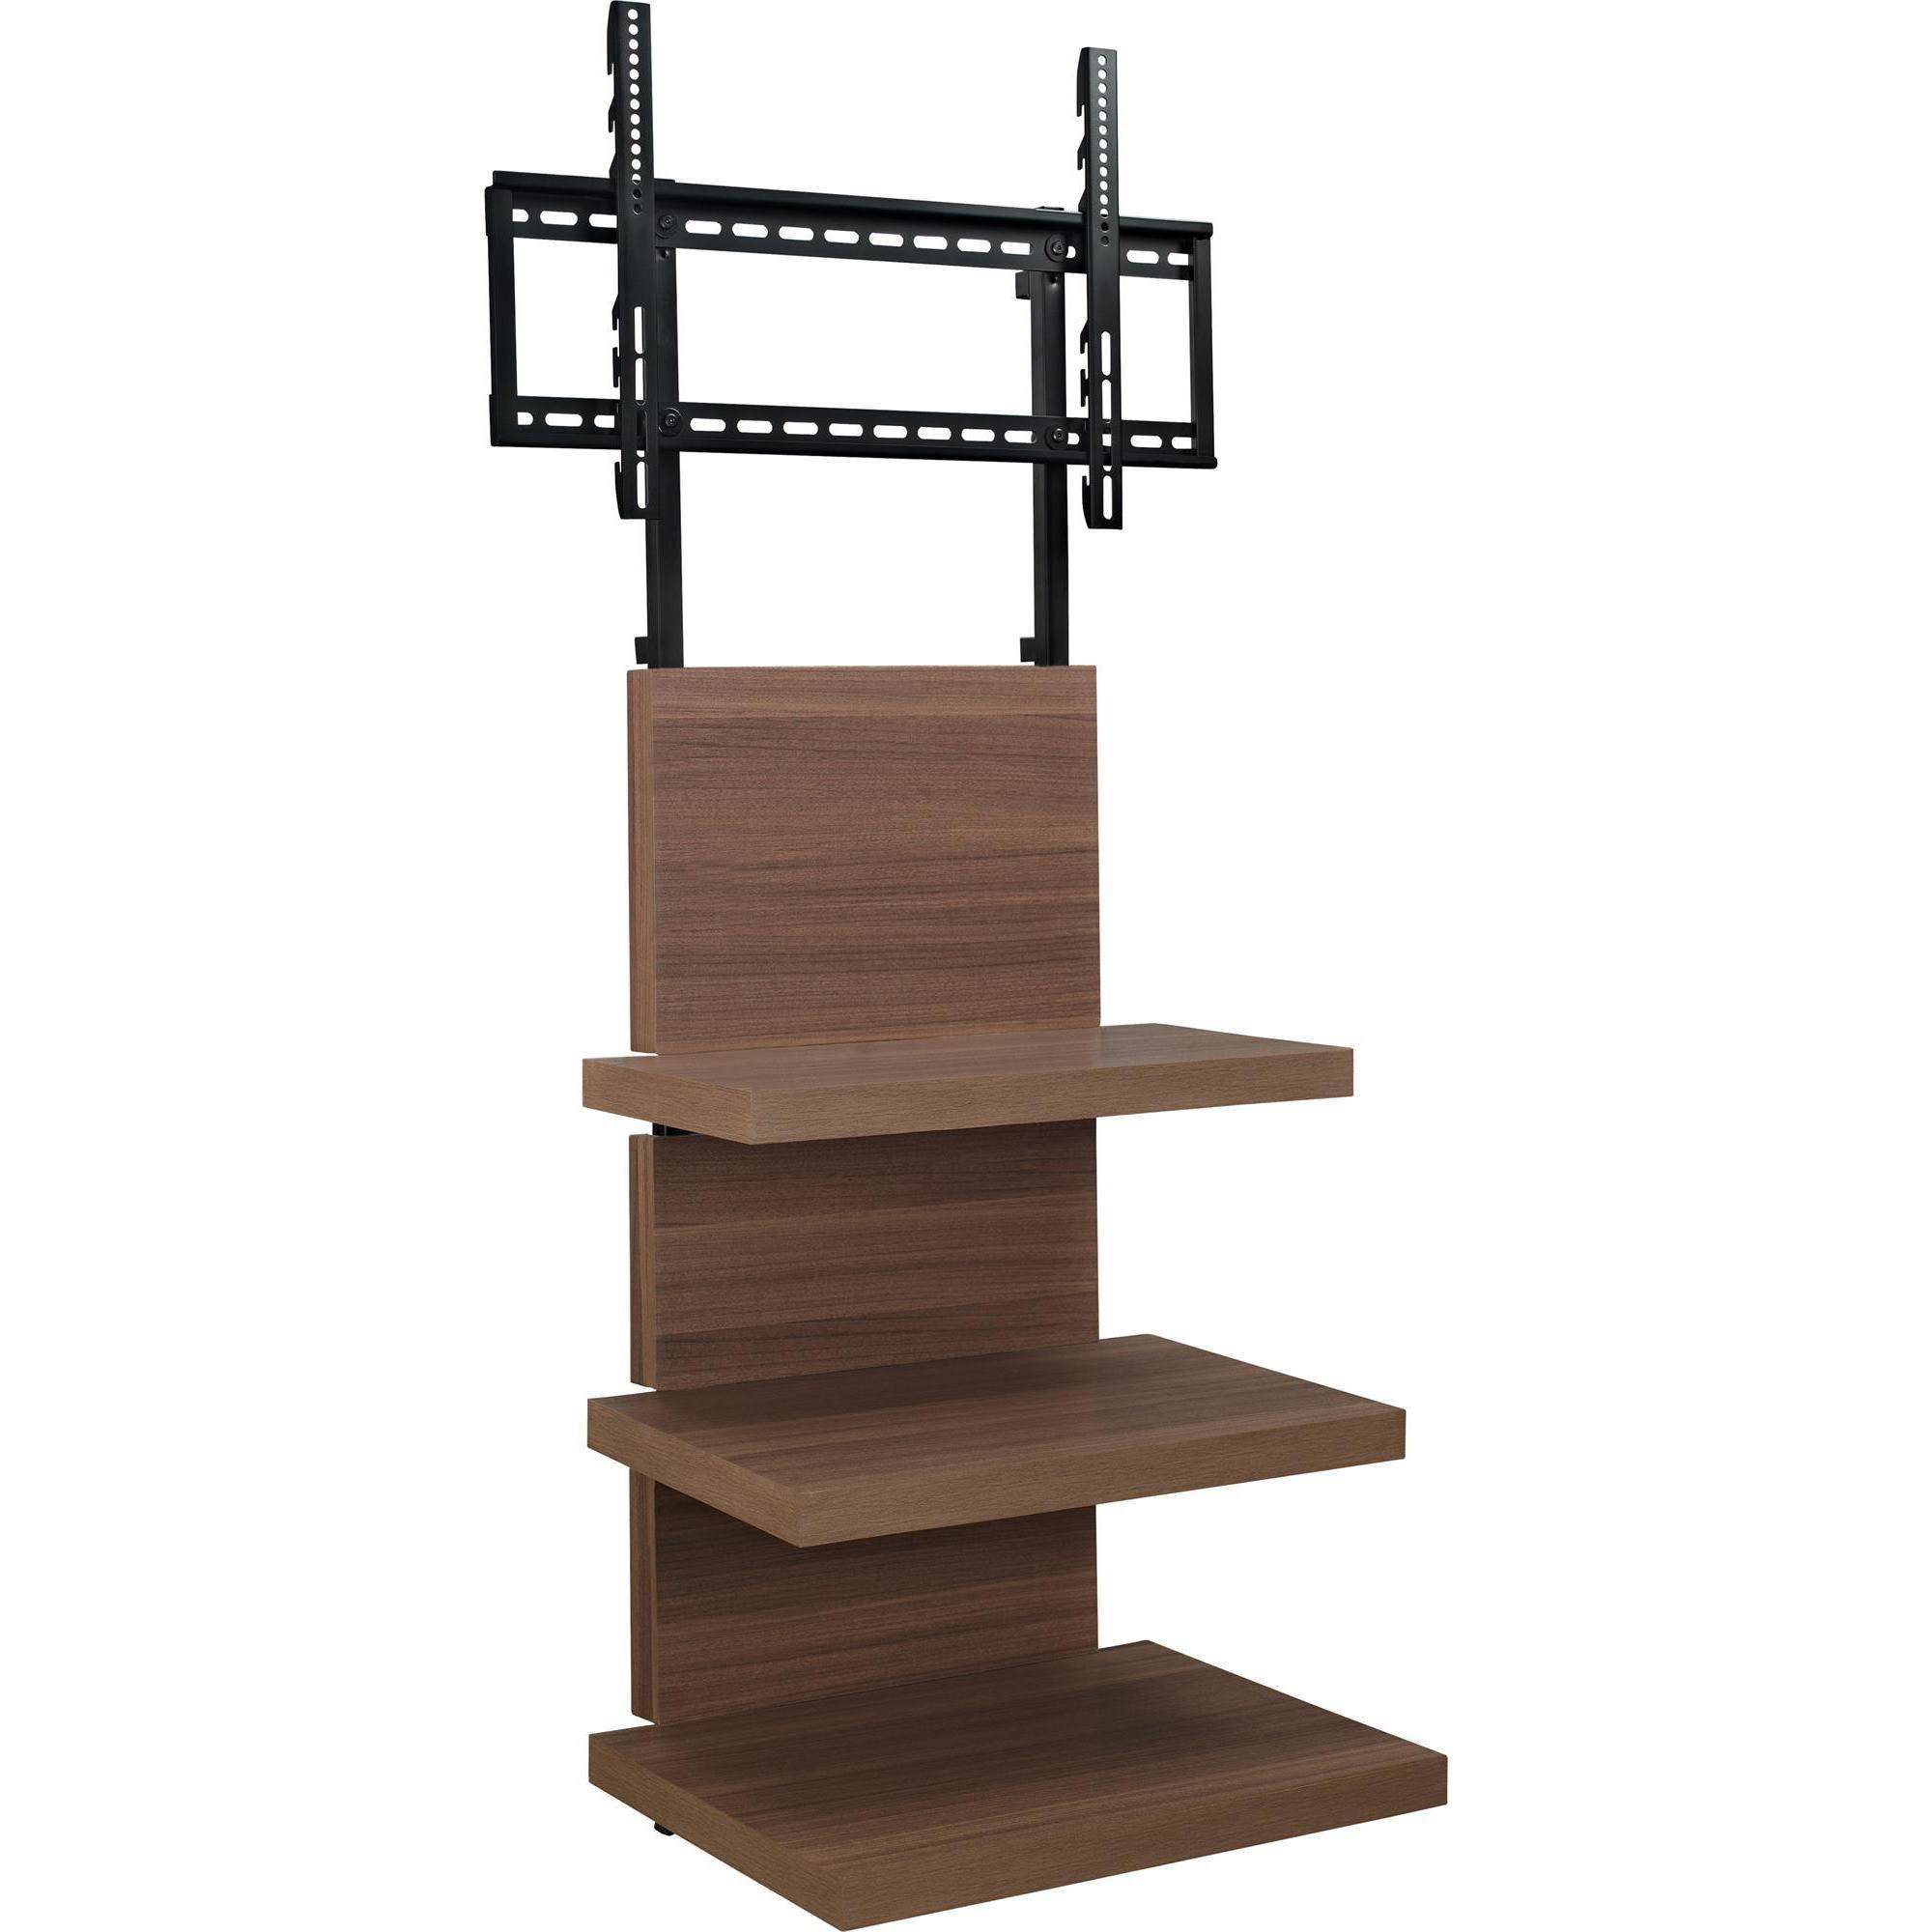 Wonderful Ameriwood Home Elevation AltraMount TV Stand For TVs Up To 60